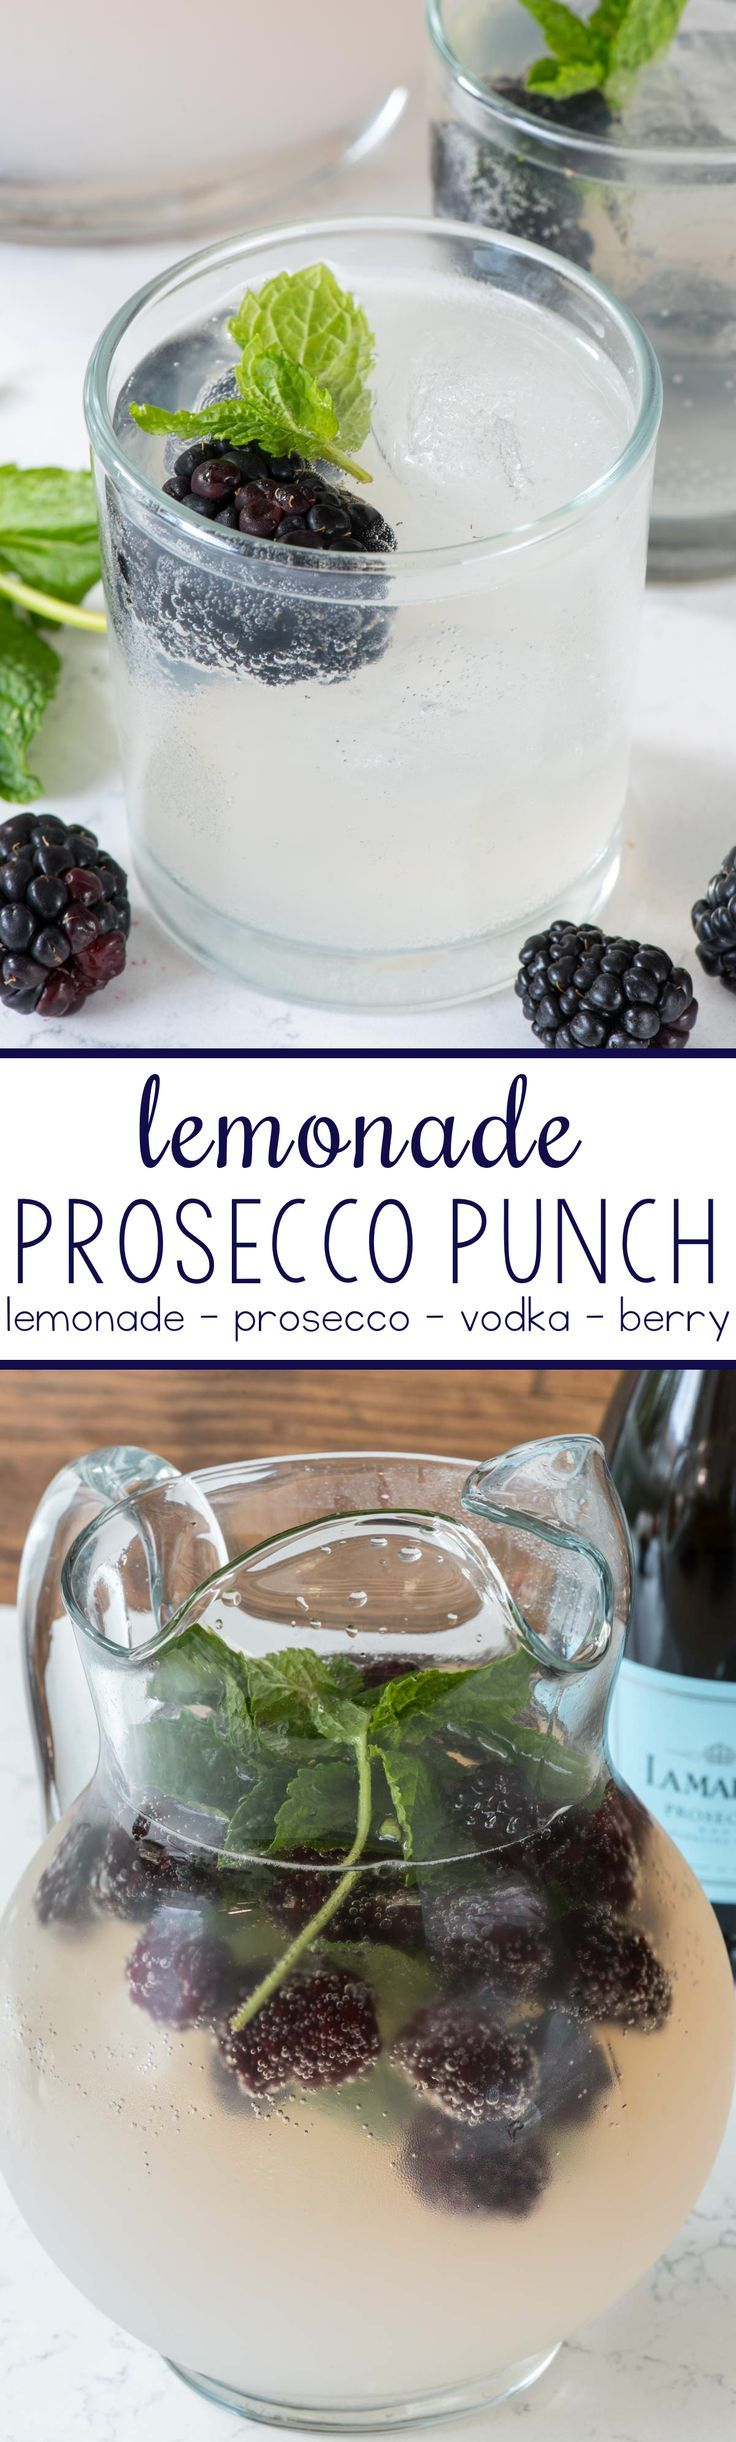 Lemonade Prosecco Punch